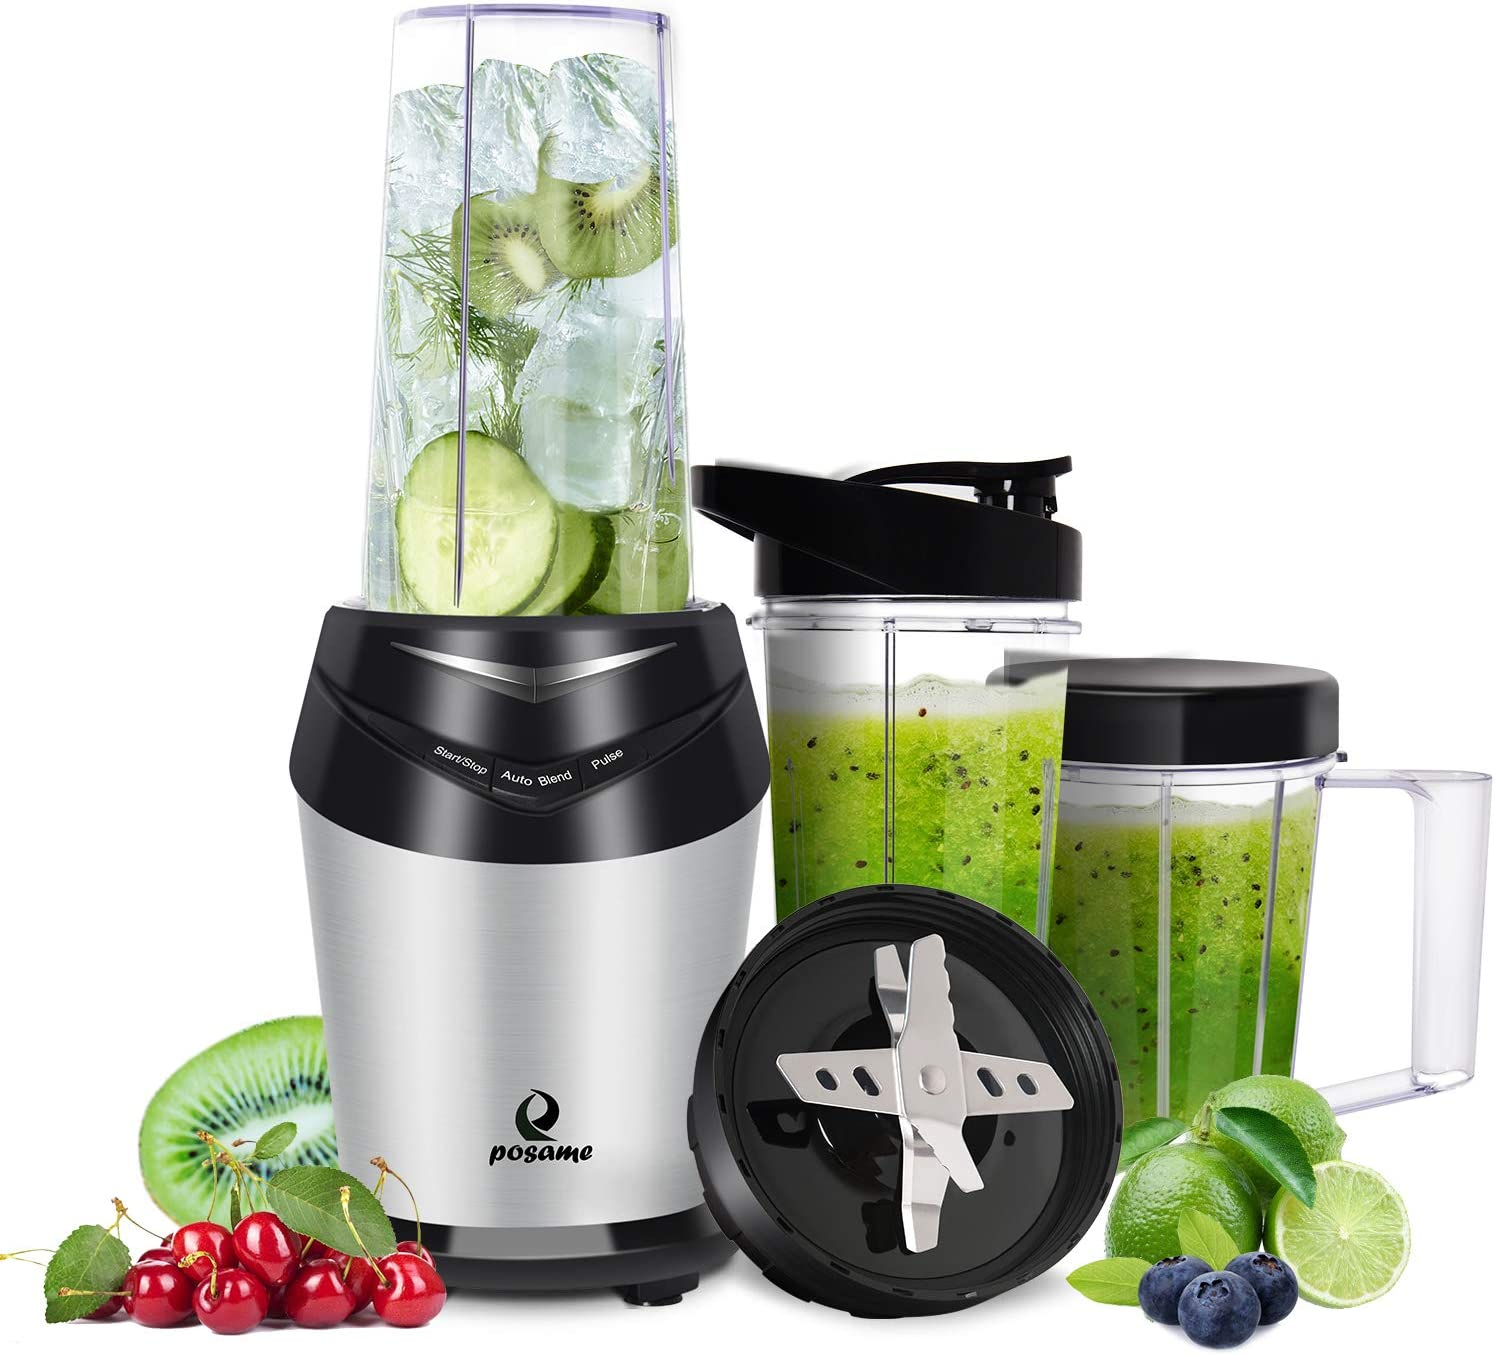 Blender 800W Smoothie Blender Mini High-Speed Personal Blender/Mixer Bullet Blender for Shakes and Smoothies Juices Nuts Coffee Bean Baby Food with 3pcs BPA-Free Portable Travel Blender Bottles in Silver